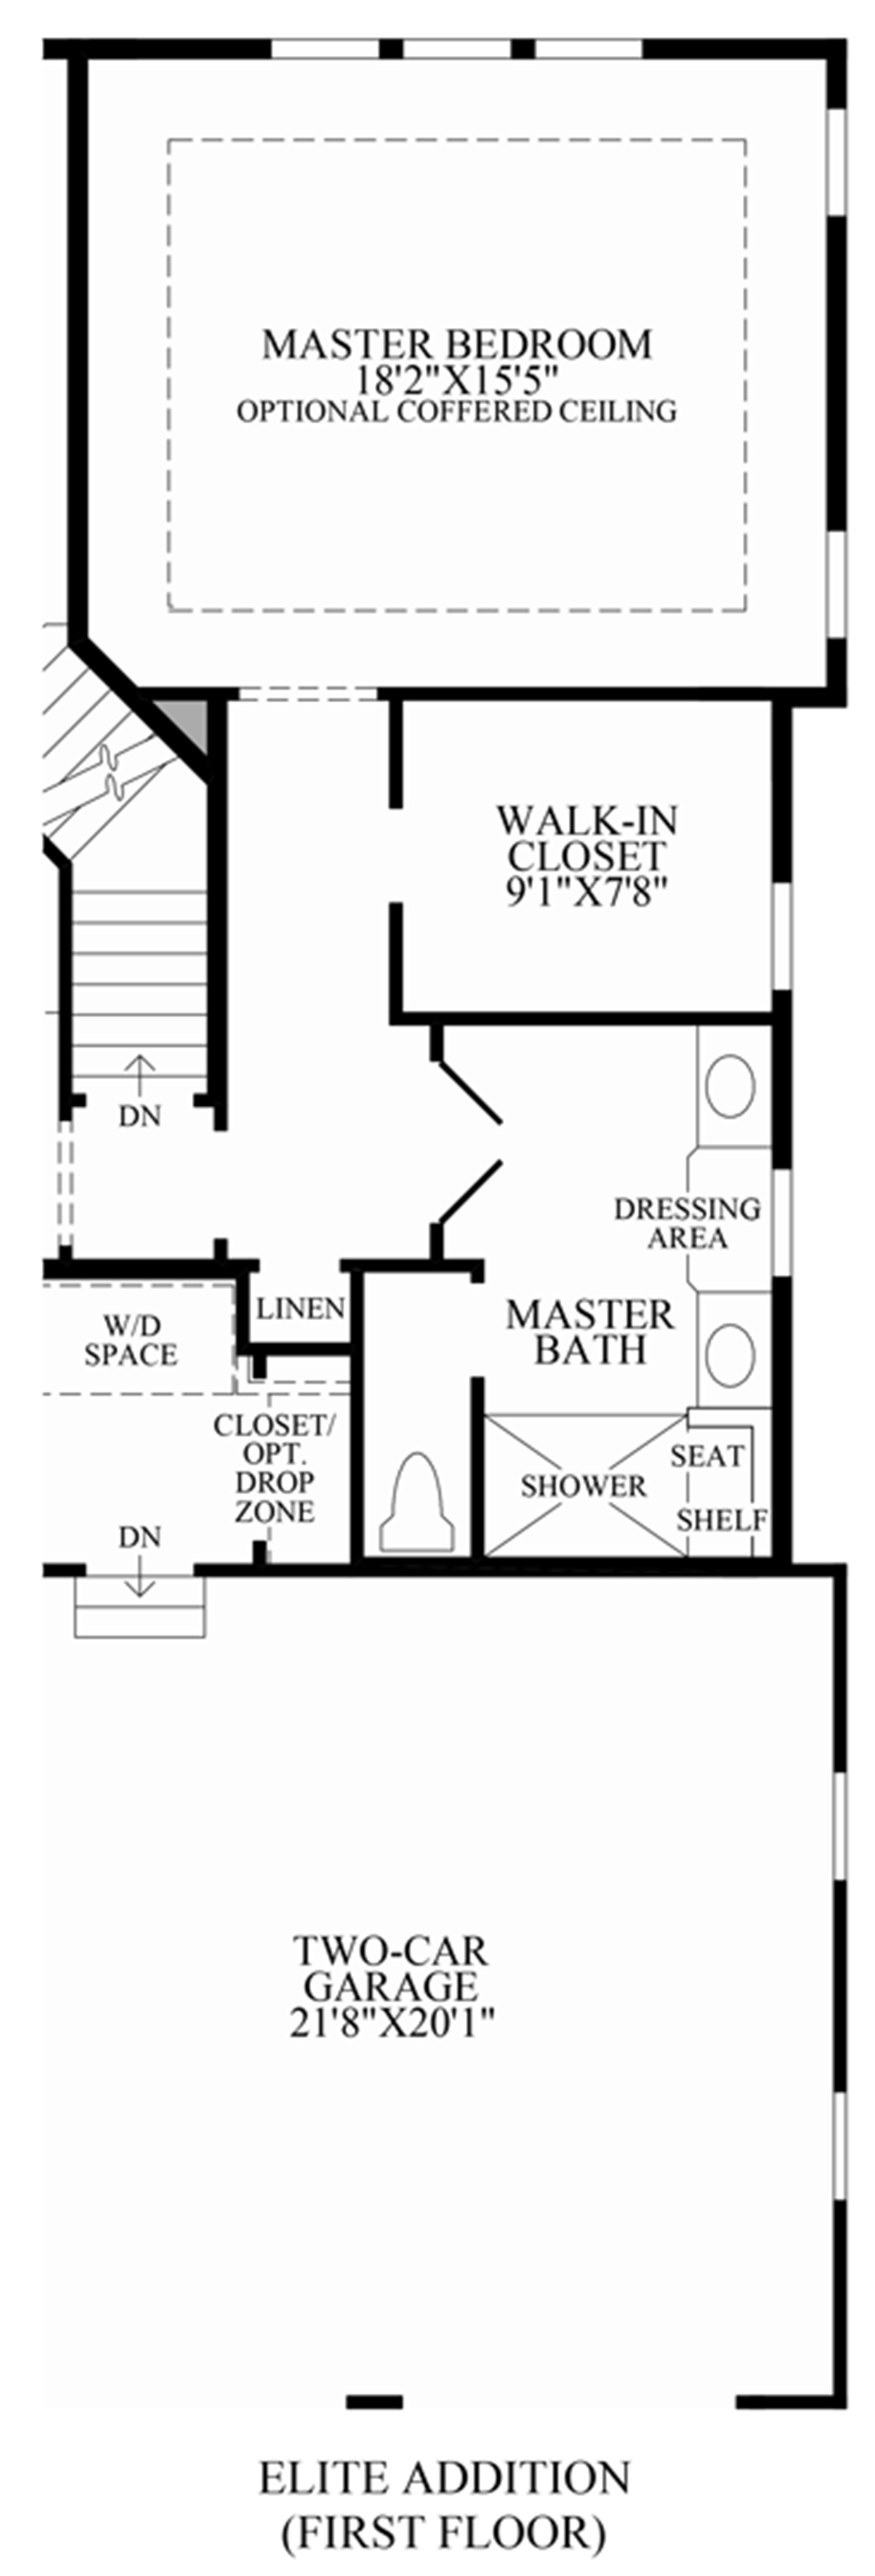 Optional Elite Addition (1st Floor) Floor Plan